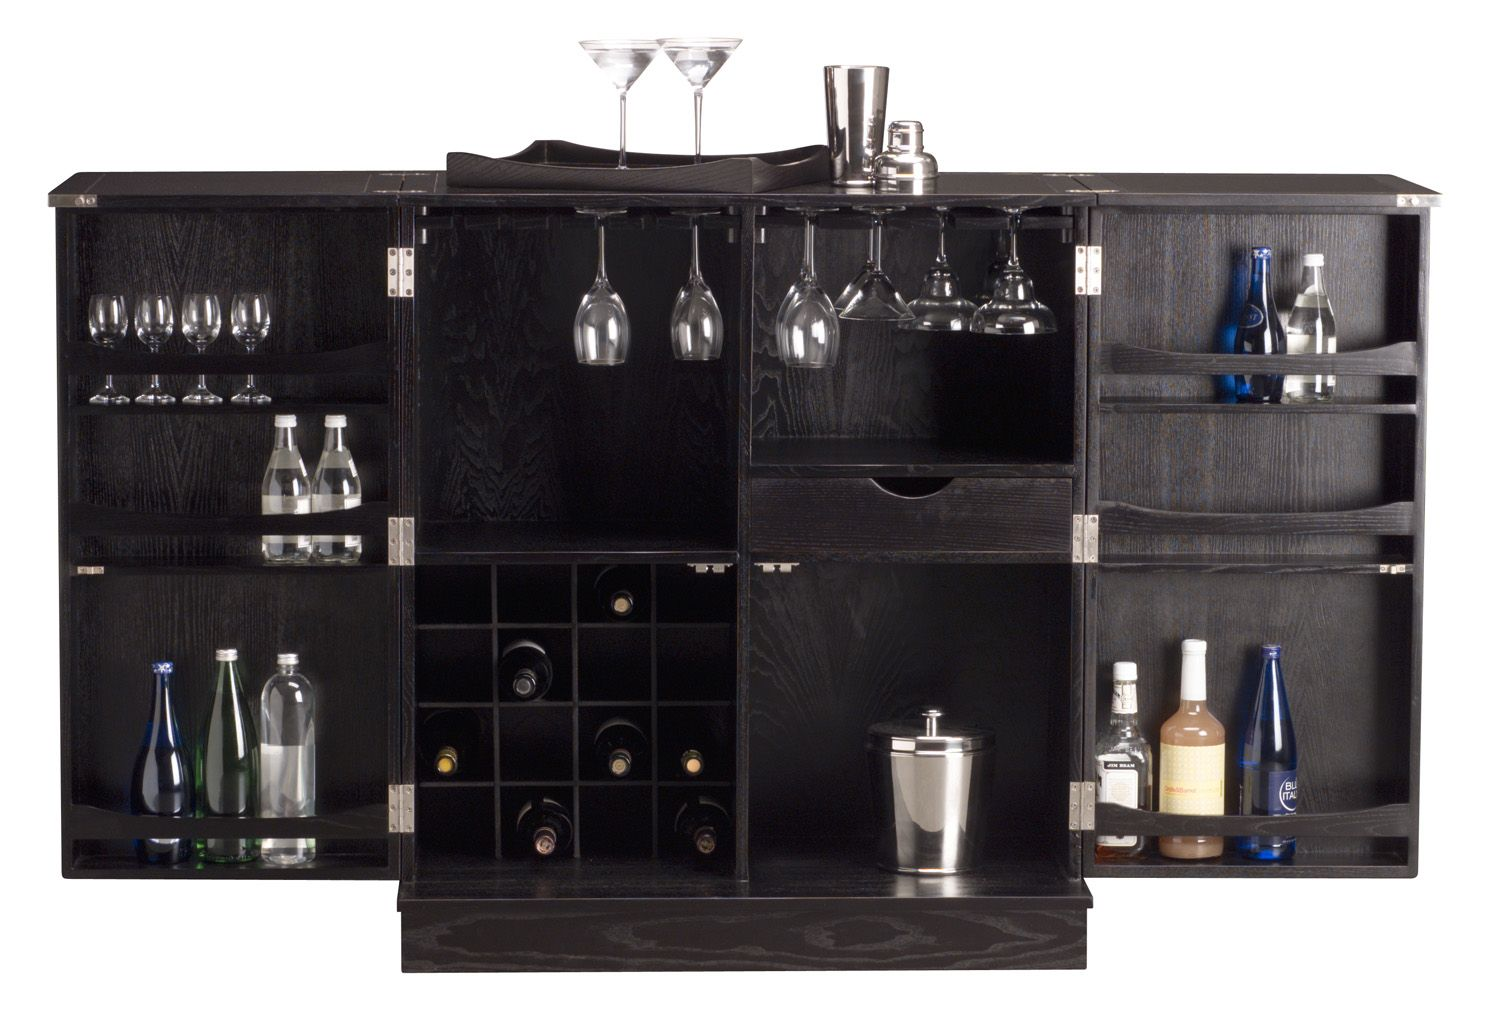 17 best images about Bar cabinet ideas on Pinterest   Small home bars   Modern bar. bar cabinet furniture home   Roselawnlutheran